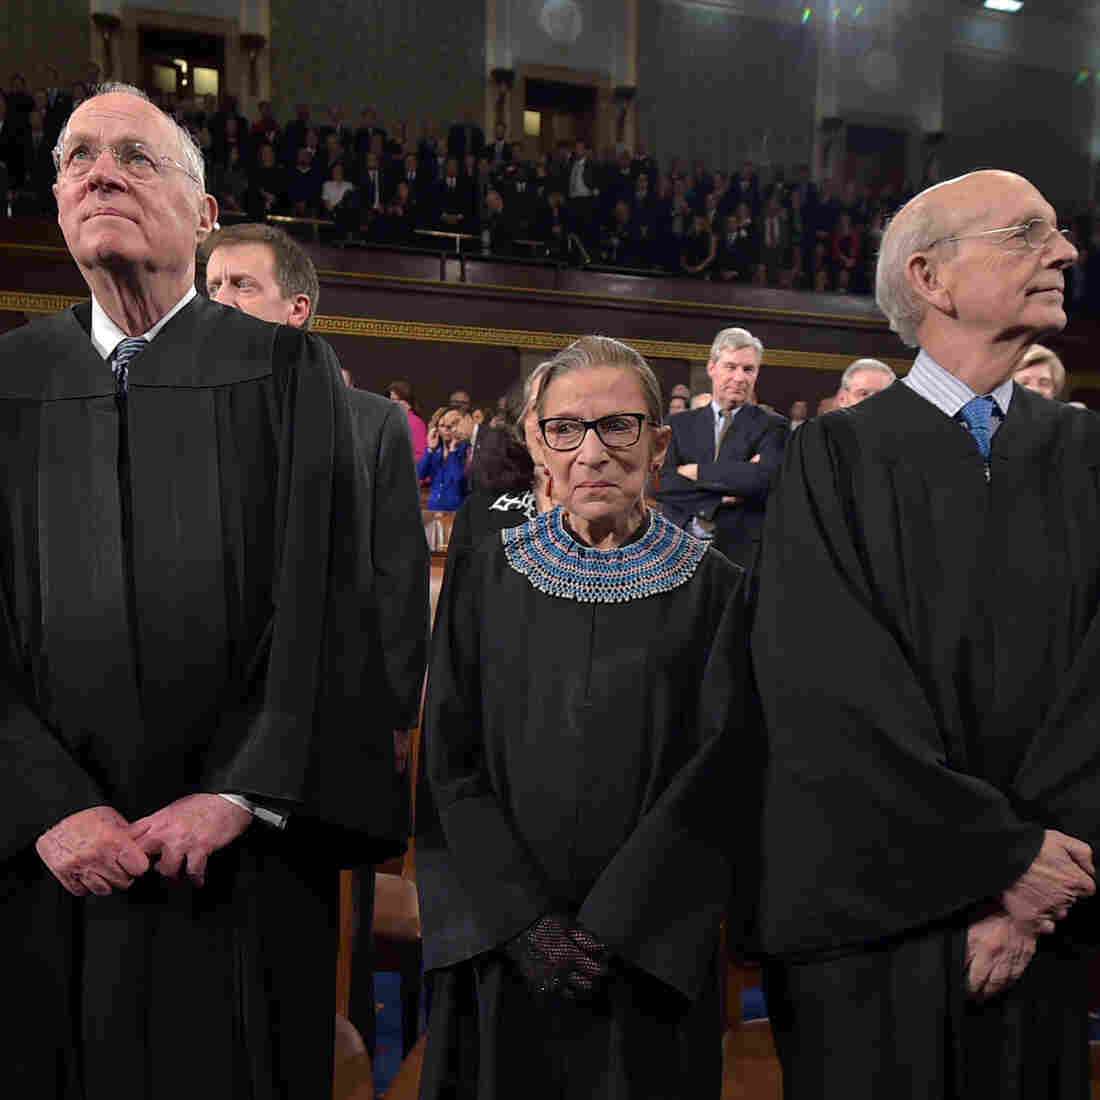 Chief Justice John Roberts (from left) and Justices Anthony M. Kennedy, Ruth Bader Ginsburg, Stephen G. Breyer and Sonia Sotomayor at the State of the Union address earlier this year.